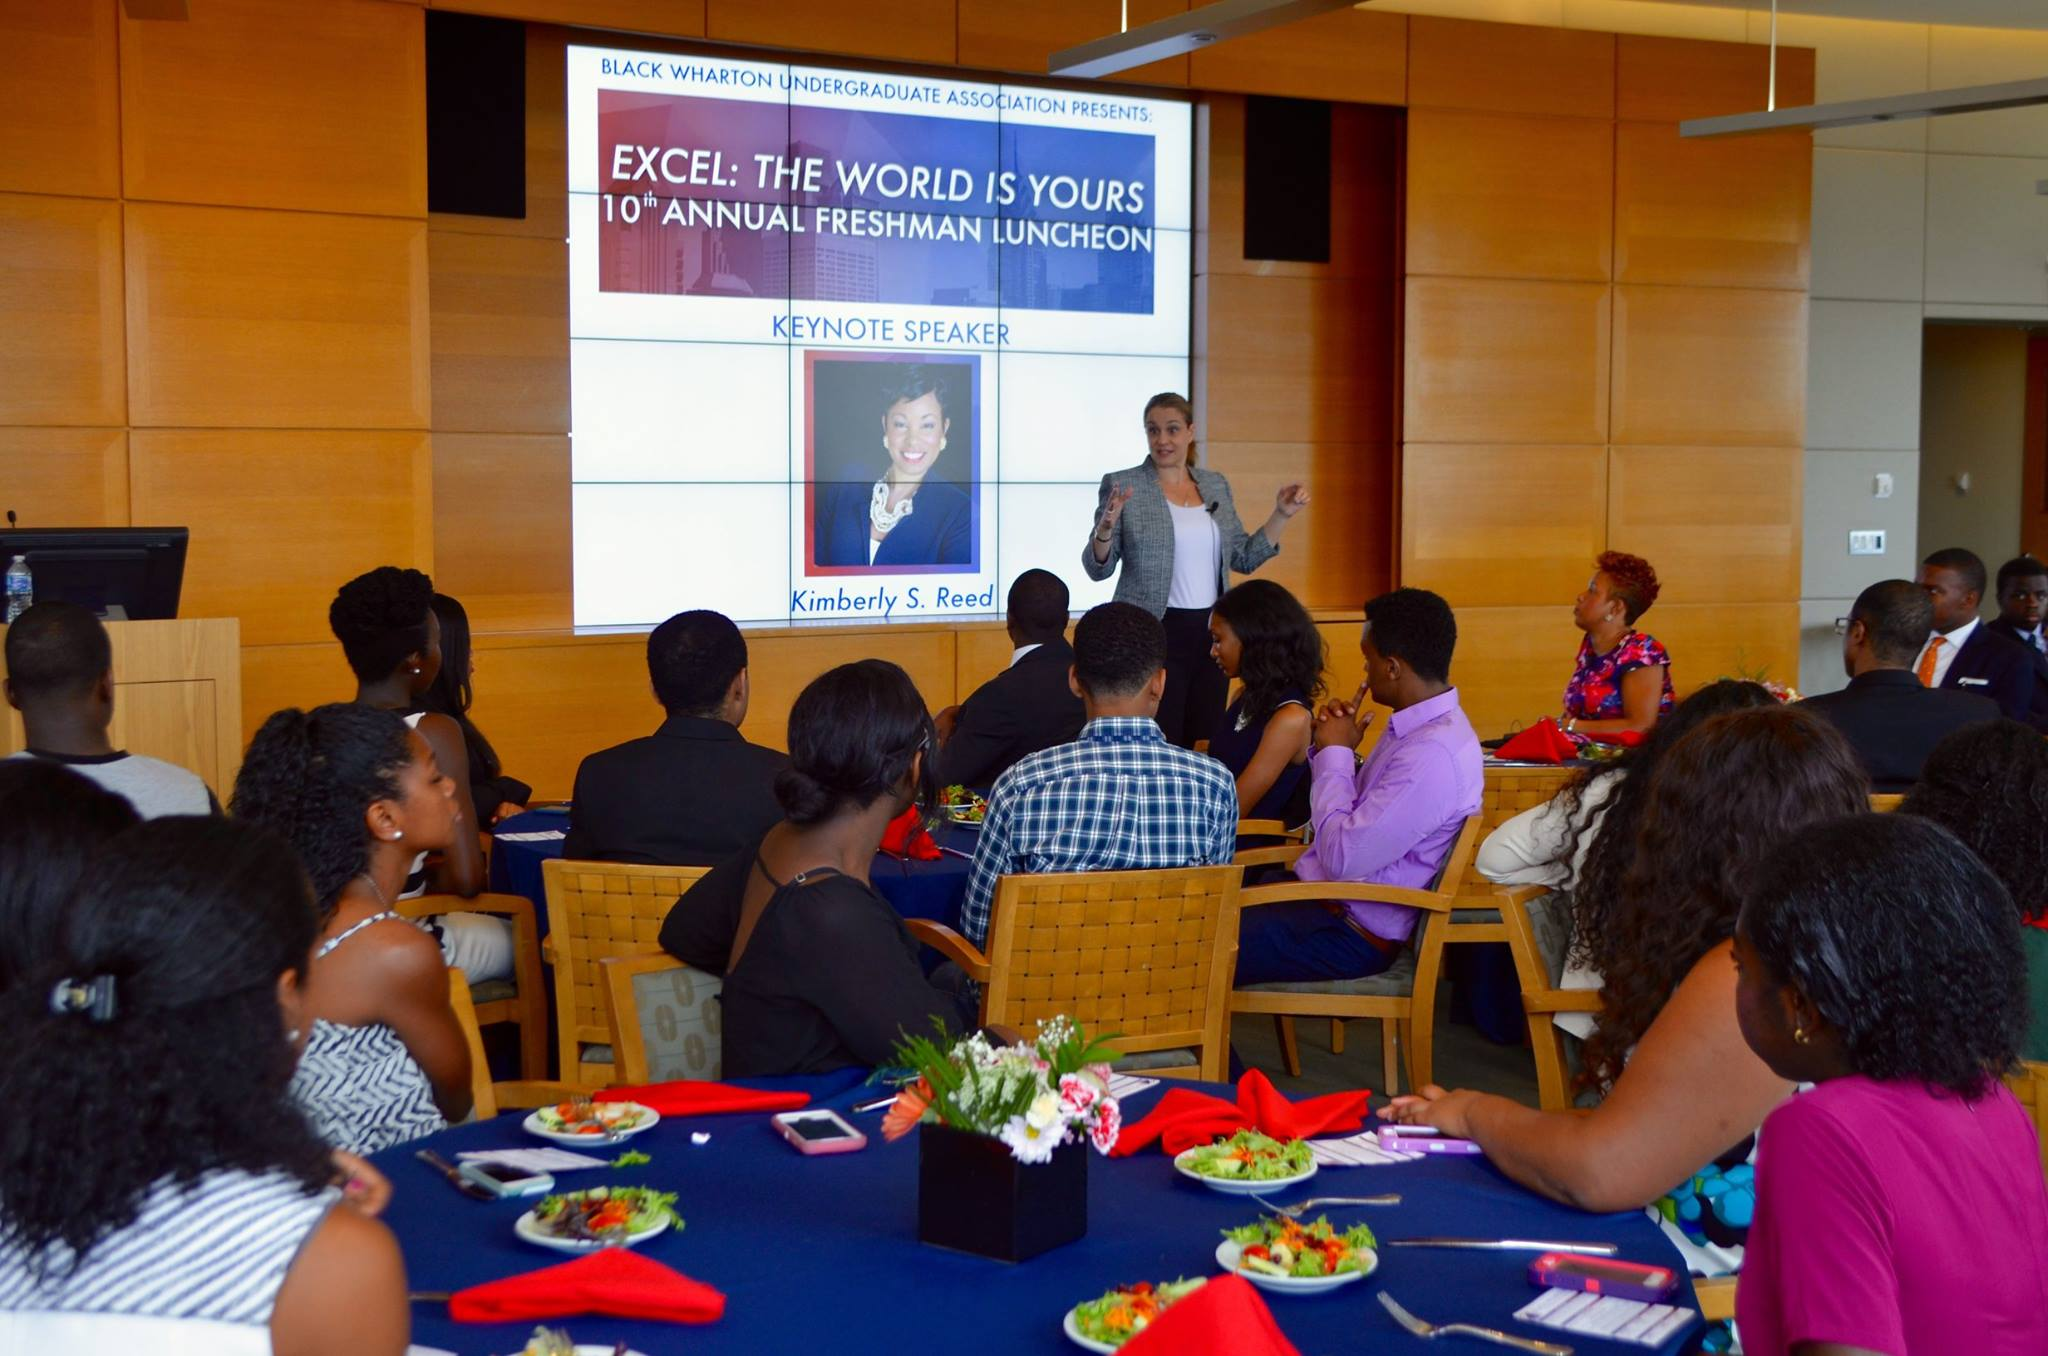 Vice Dean Lori Rosenkopf educates freshmen on the multiple resources they have at their fingertips to help them succeed at Penn. It's a journey from start to finish and freshmen got plenty of tips from the Vice Dean on how to navigate their lives at Penn.